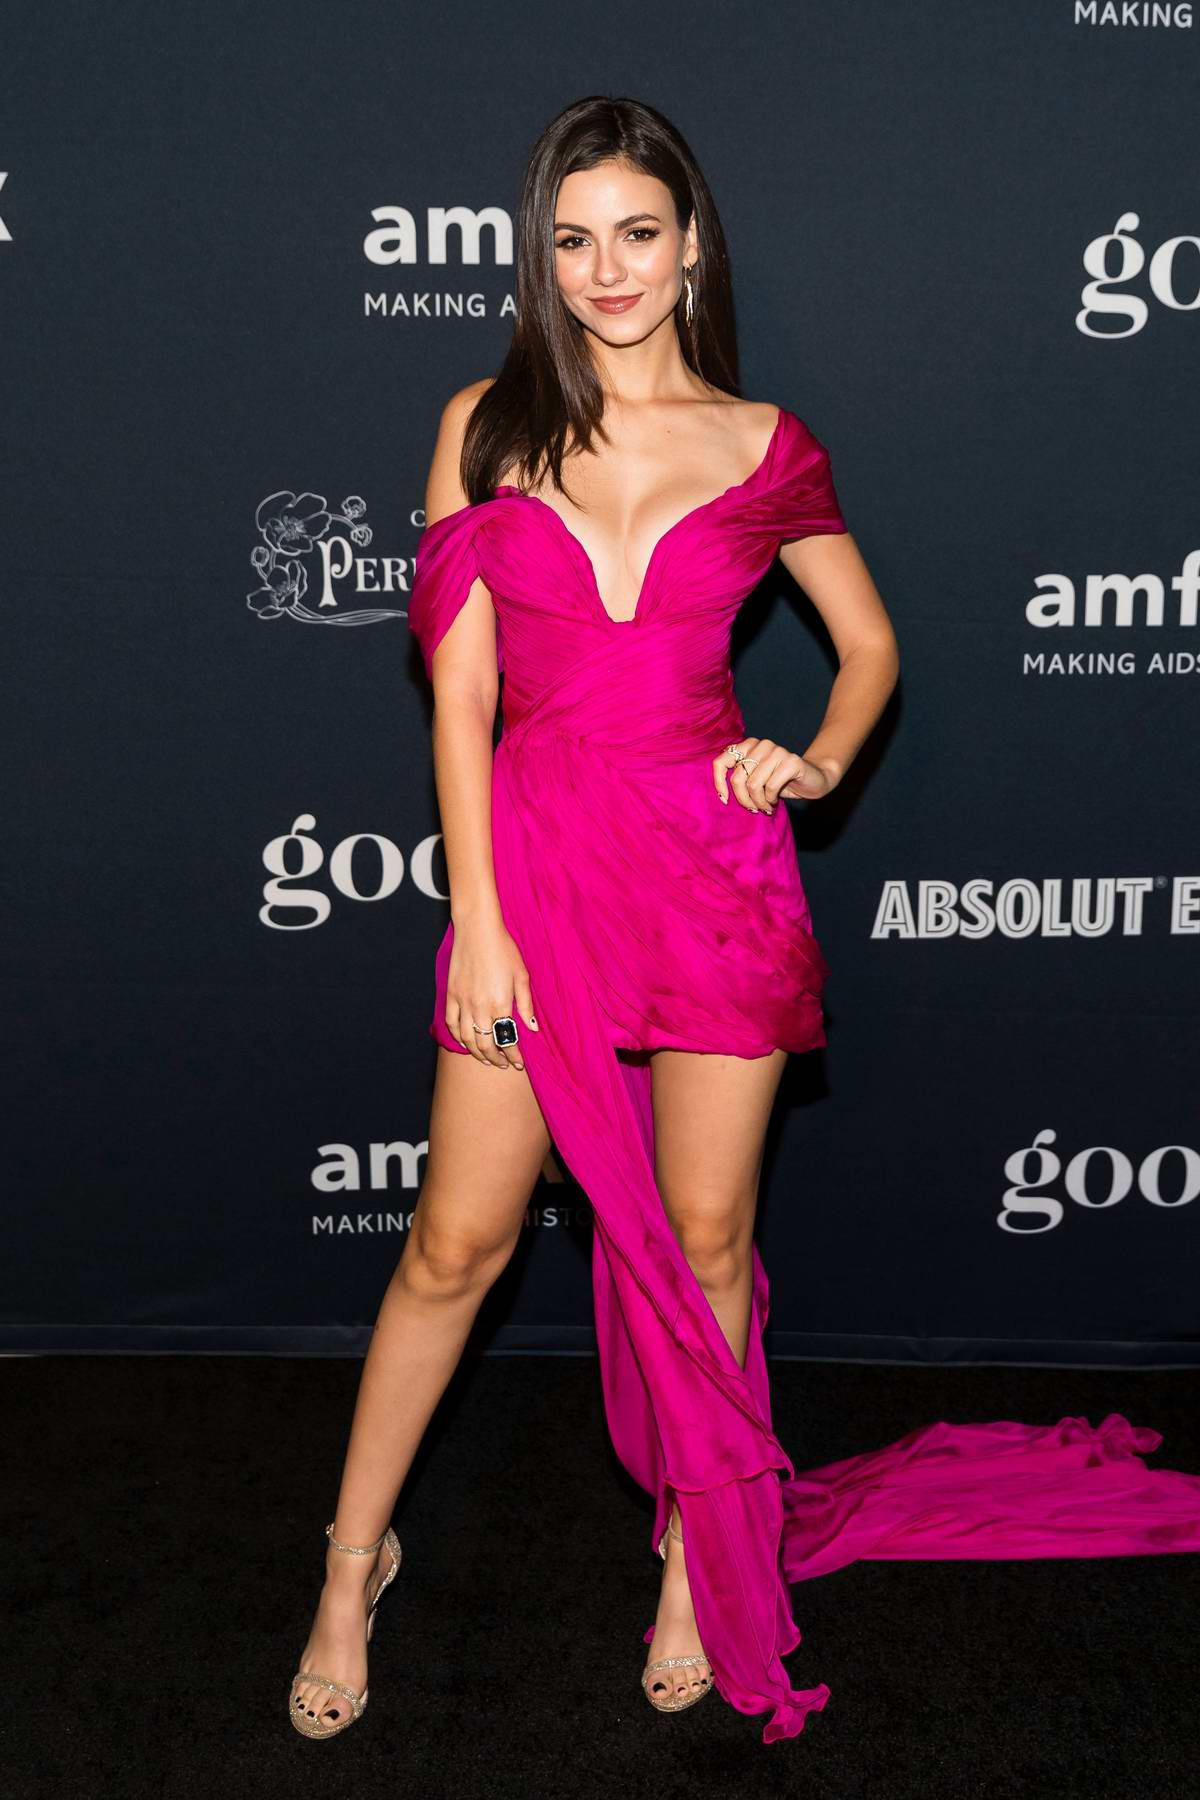 Victoria Justice attends the amfAR Charity Poker Tournament And Game Night in San Francisco, California